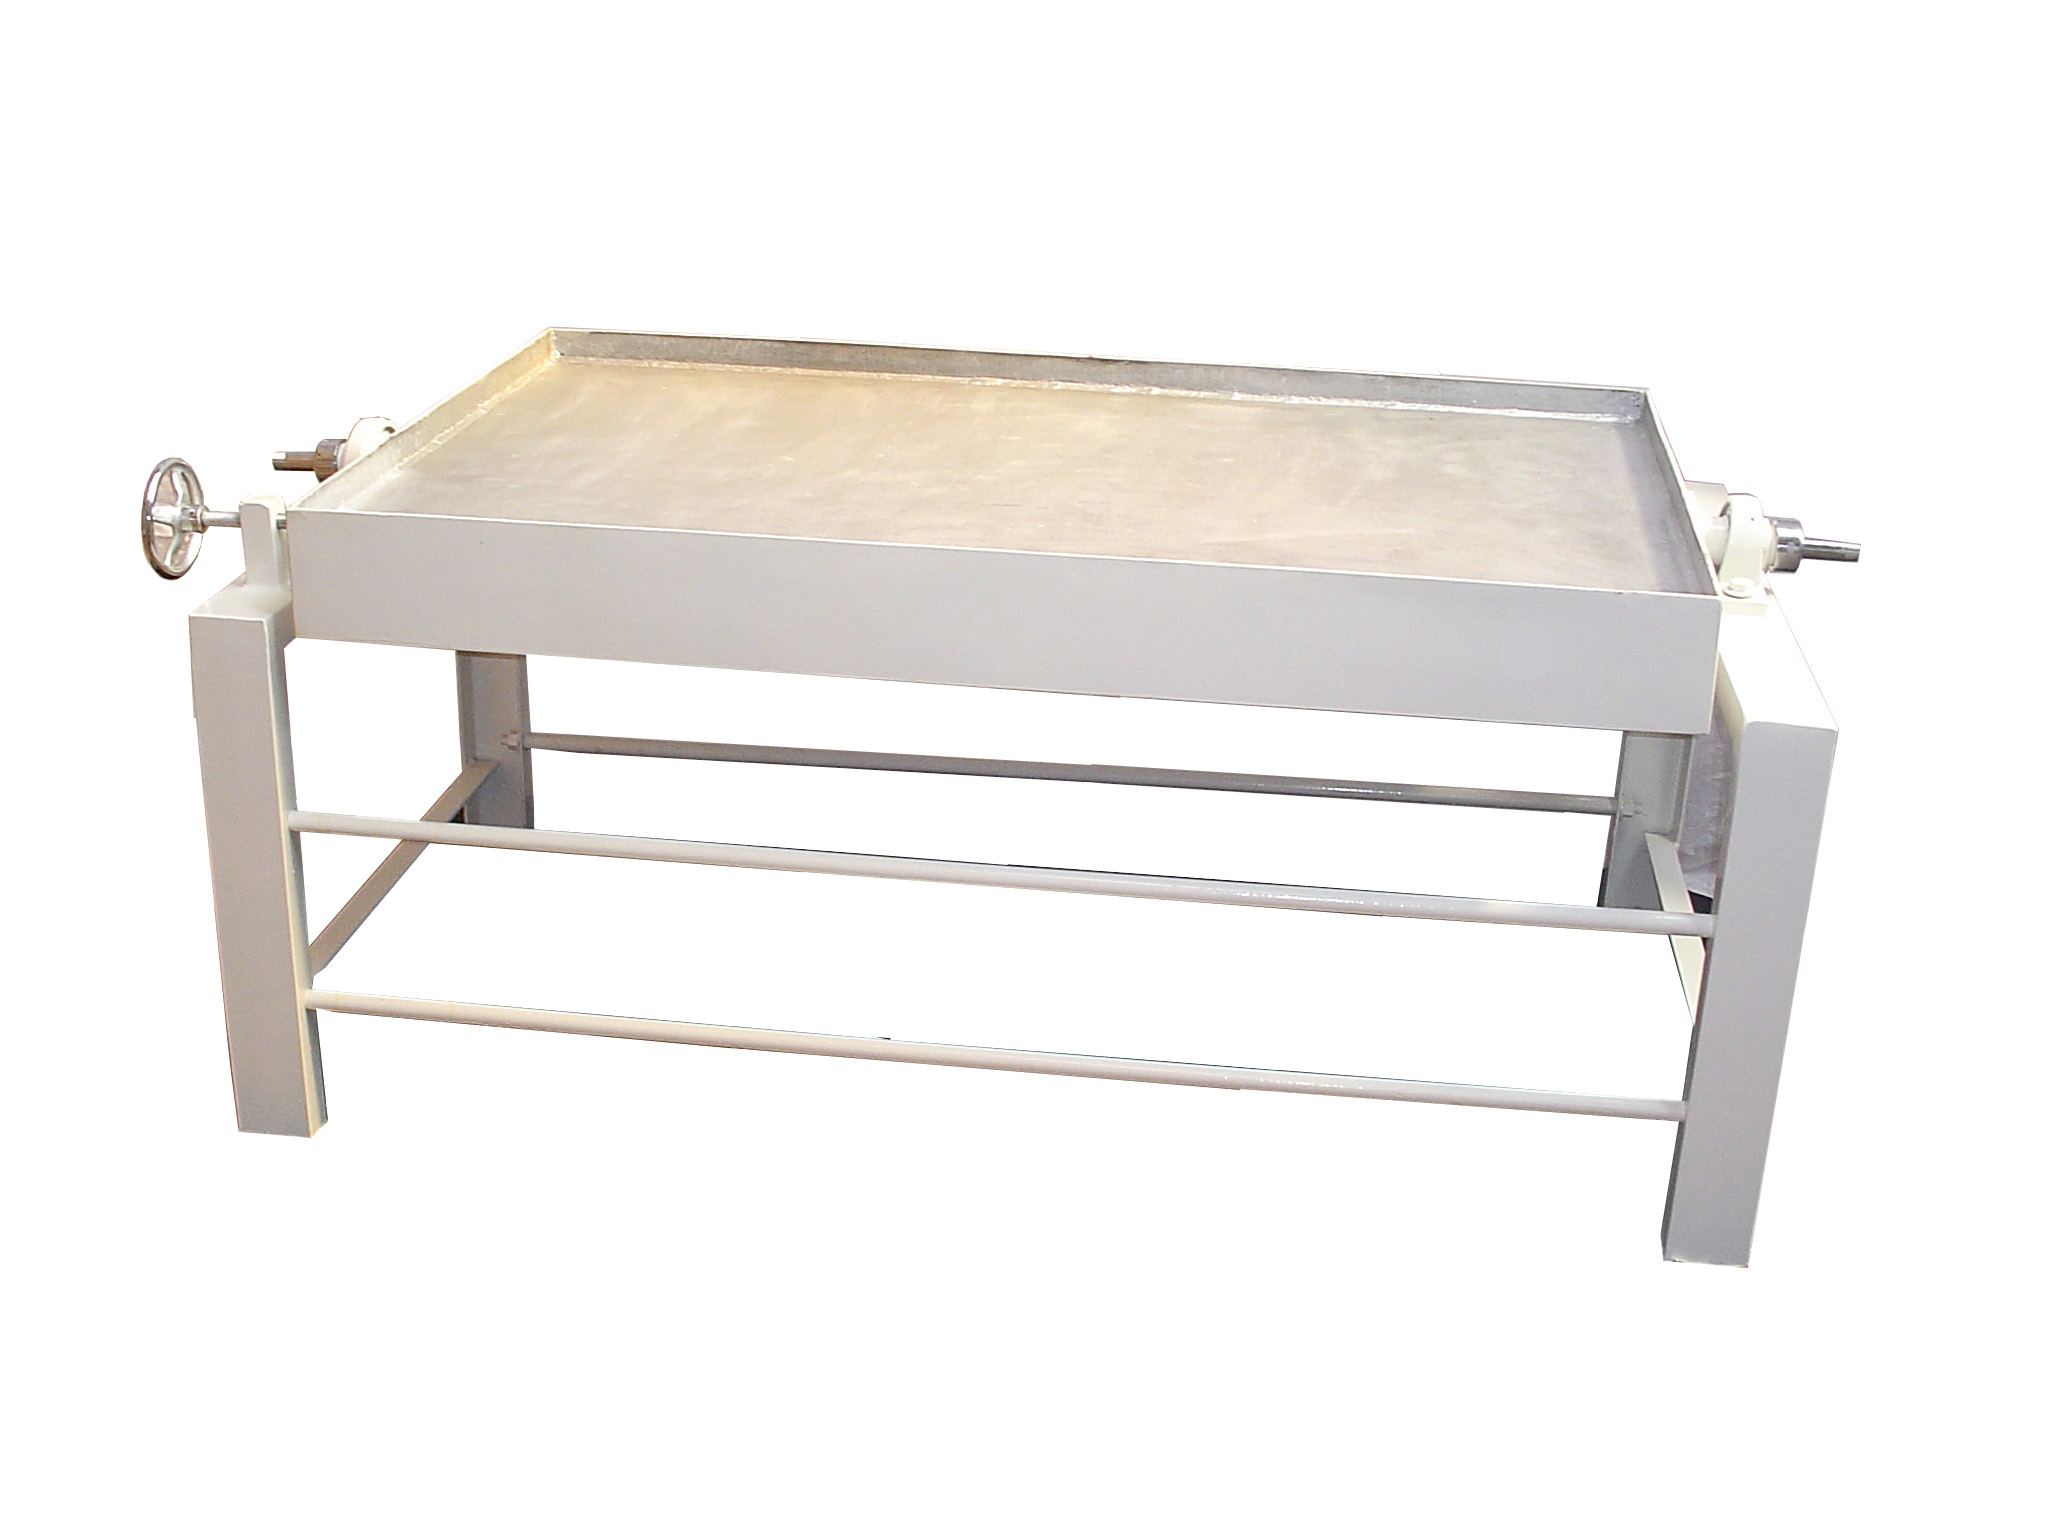 COOLING PLATE